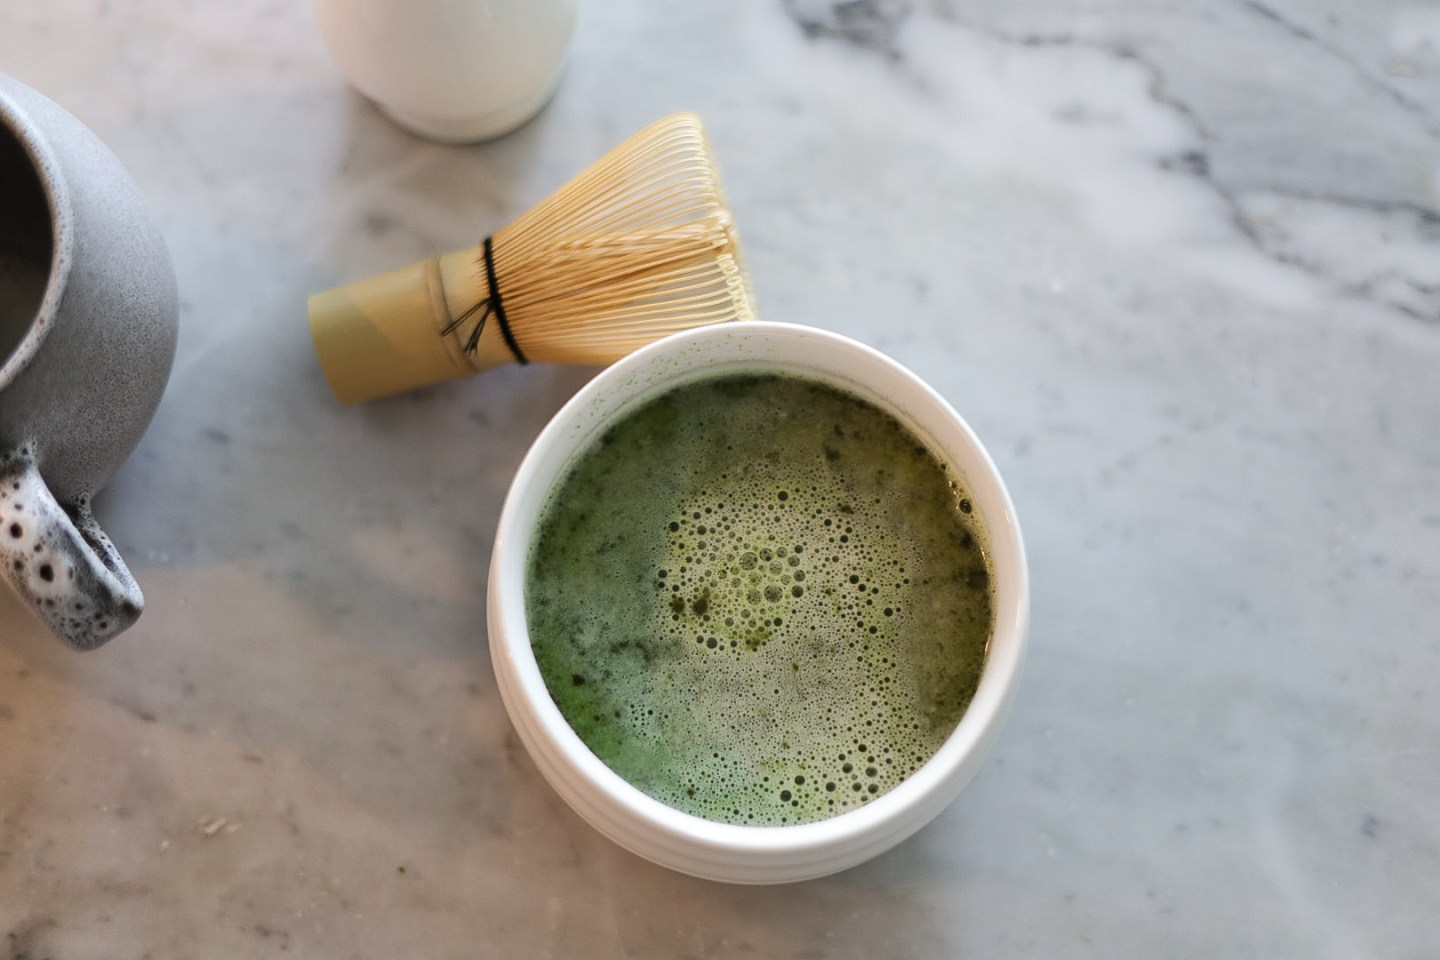 Benefits Of Adding Matcha To Your Diet